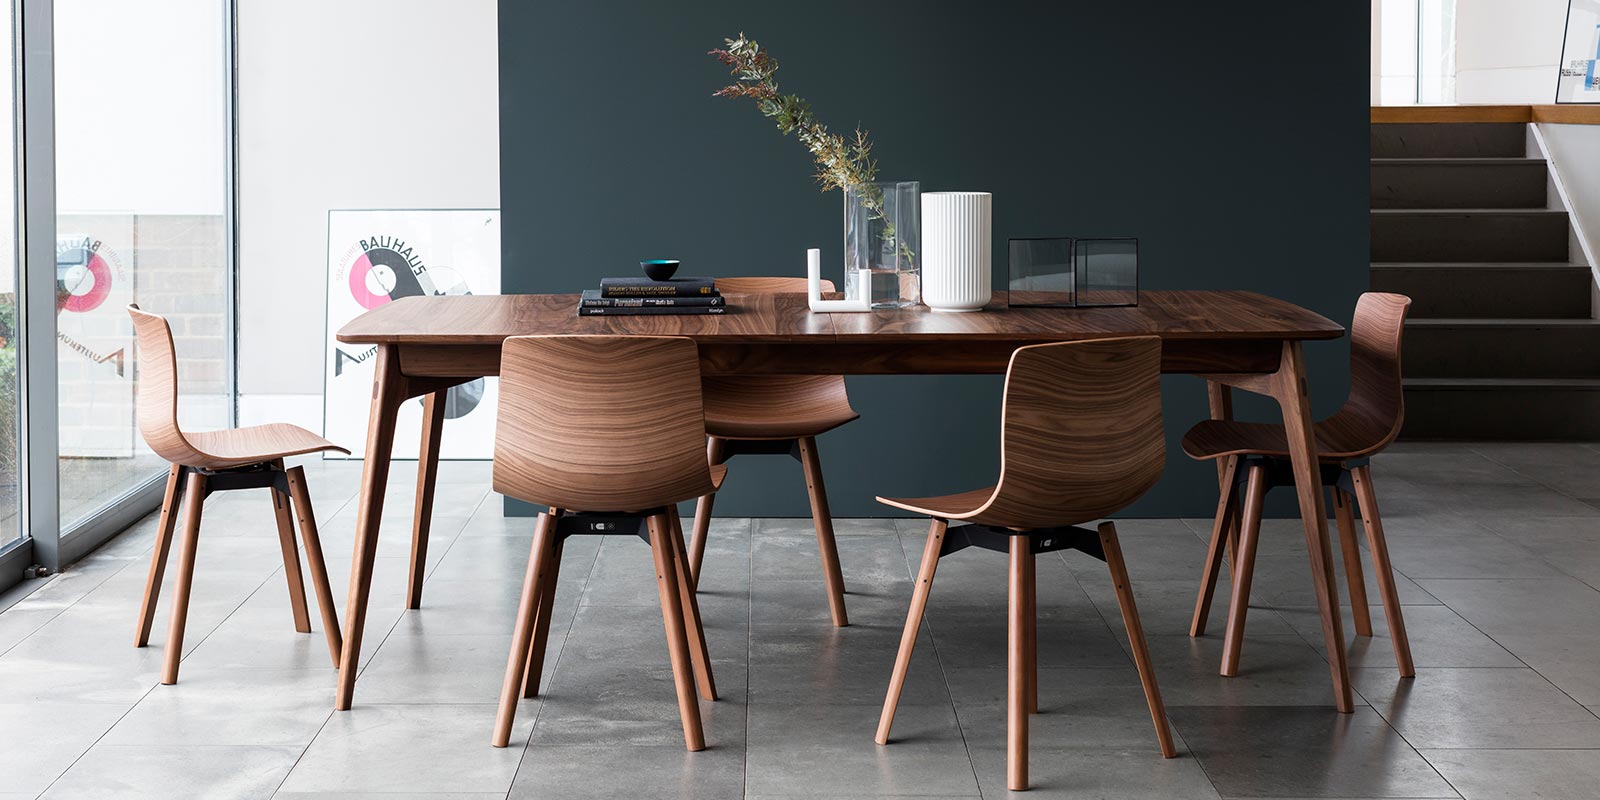 Papillon Interiors Black Friday 2020 - Case Dulwich Table & Loku Chairs